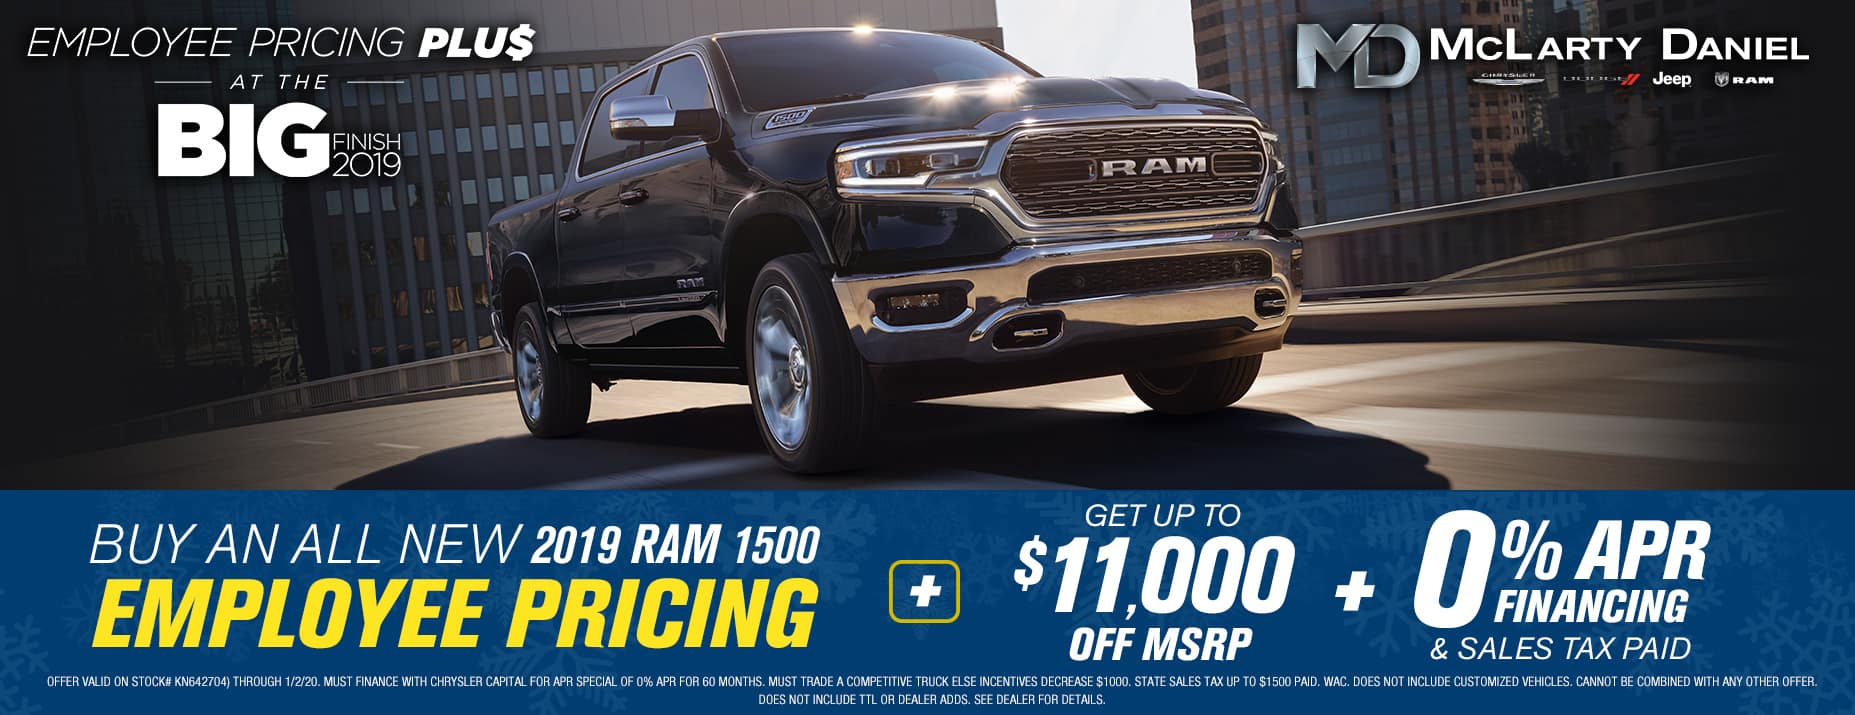 2019 Ram 1500 - Up to $11,000 off msrp -PLUS- 0% APR financing!